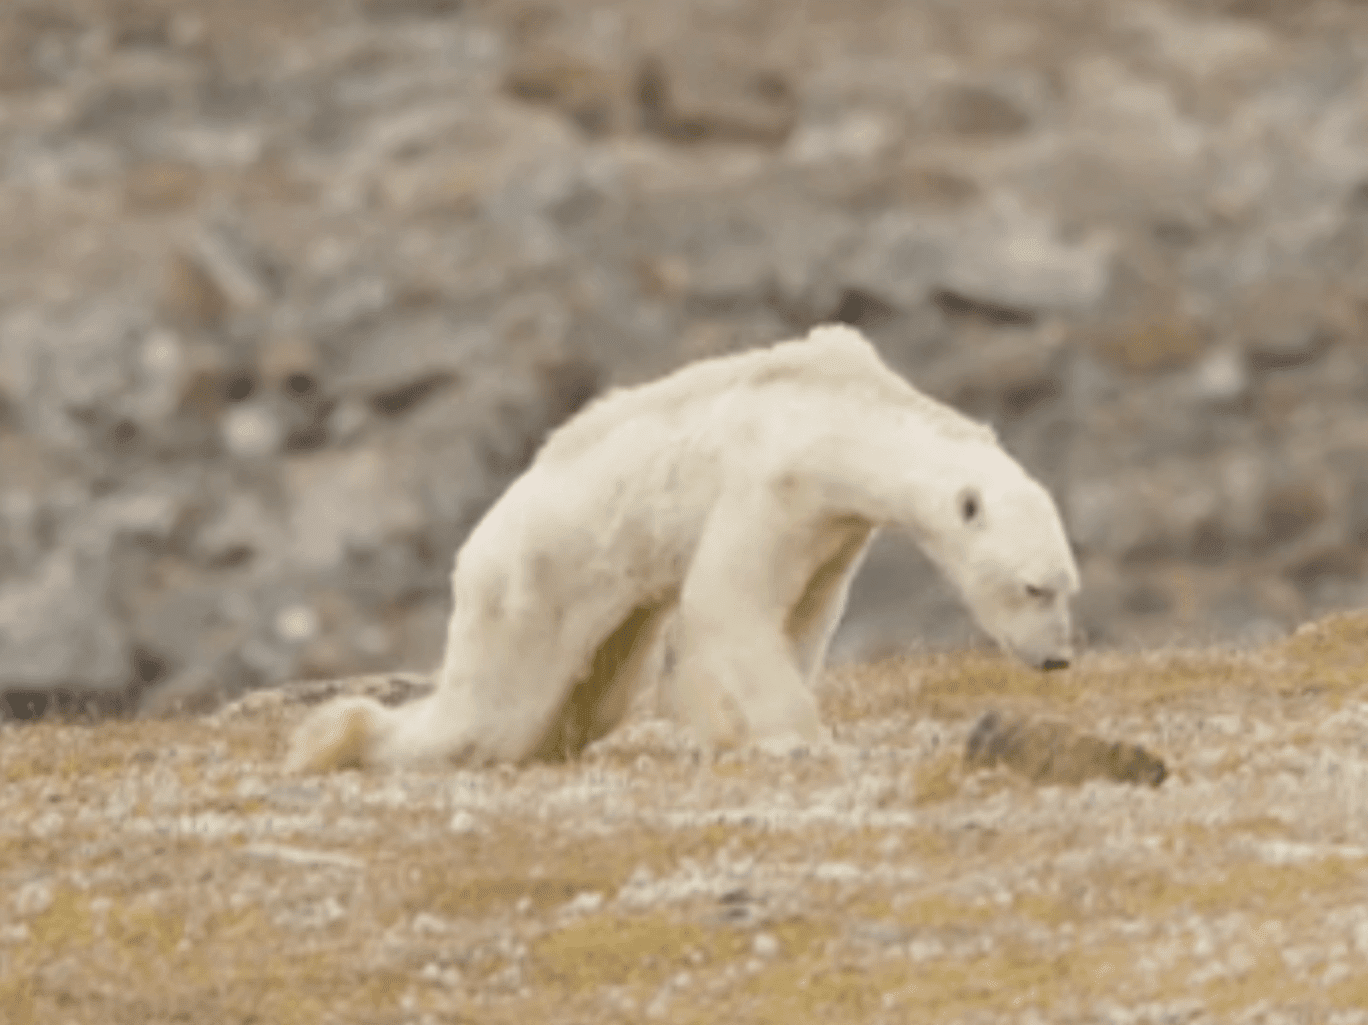 Heartbreaking Video Of Helpless Polar Bear Starving To Death